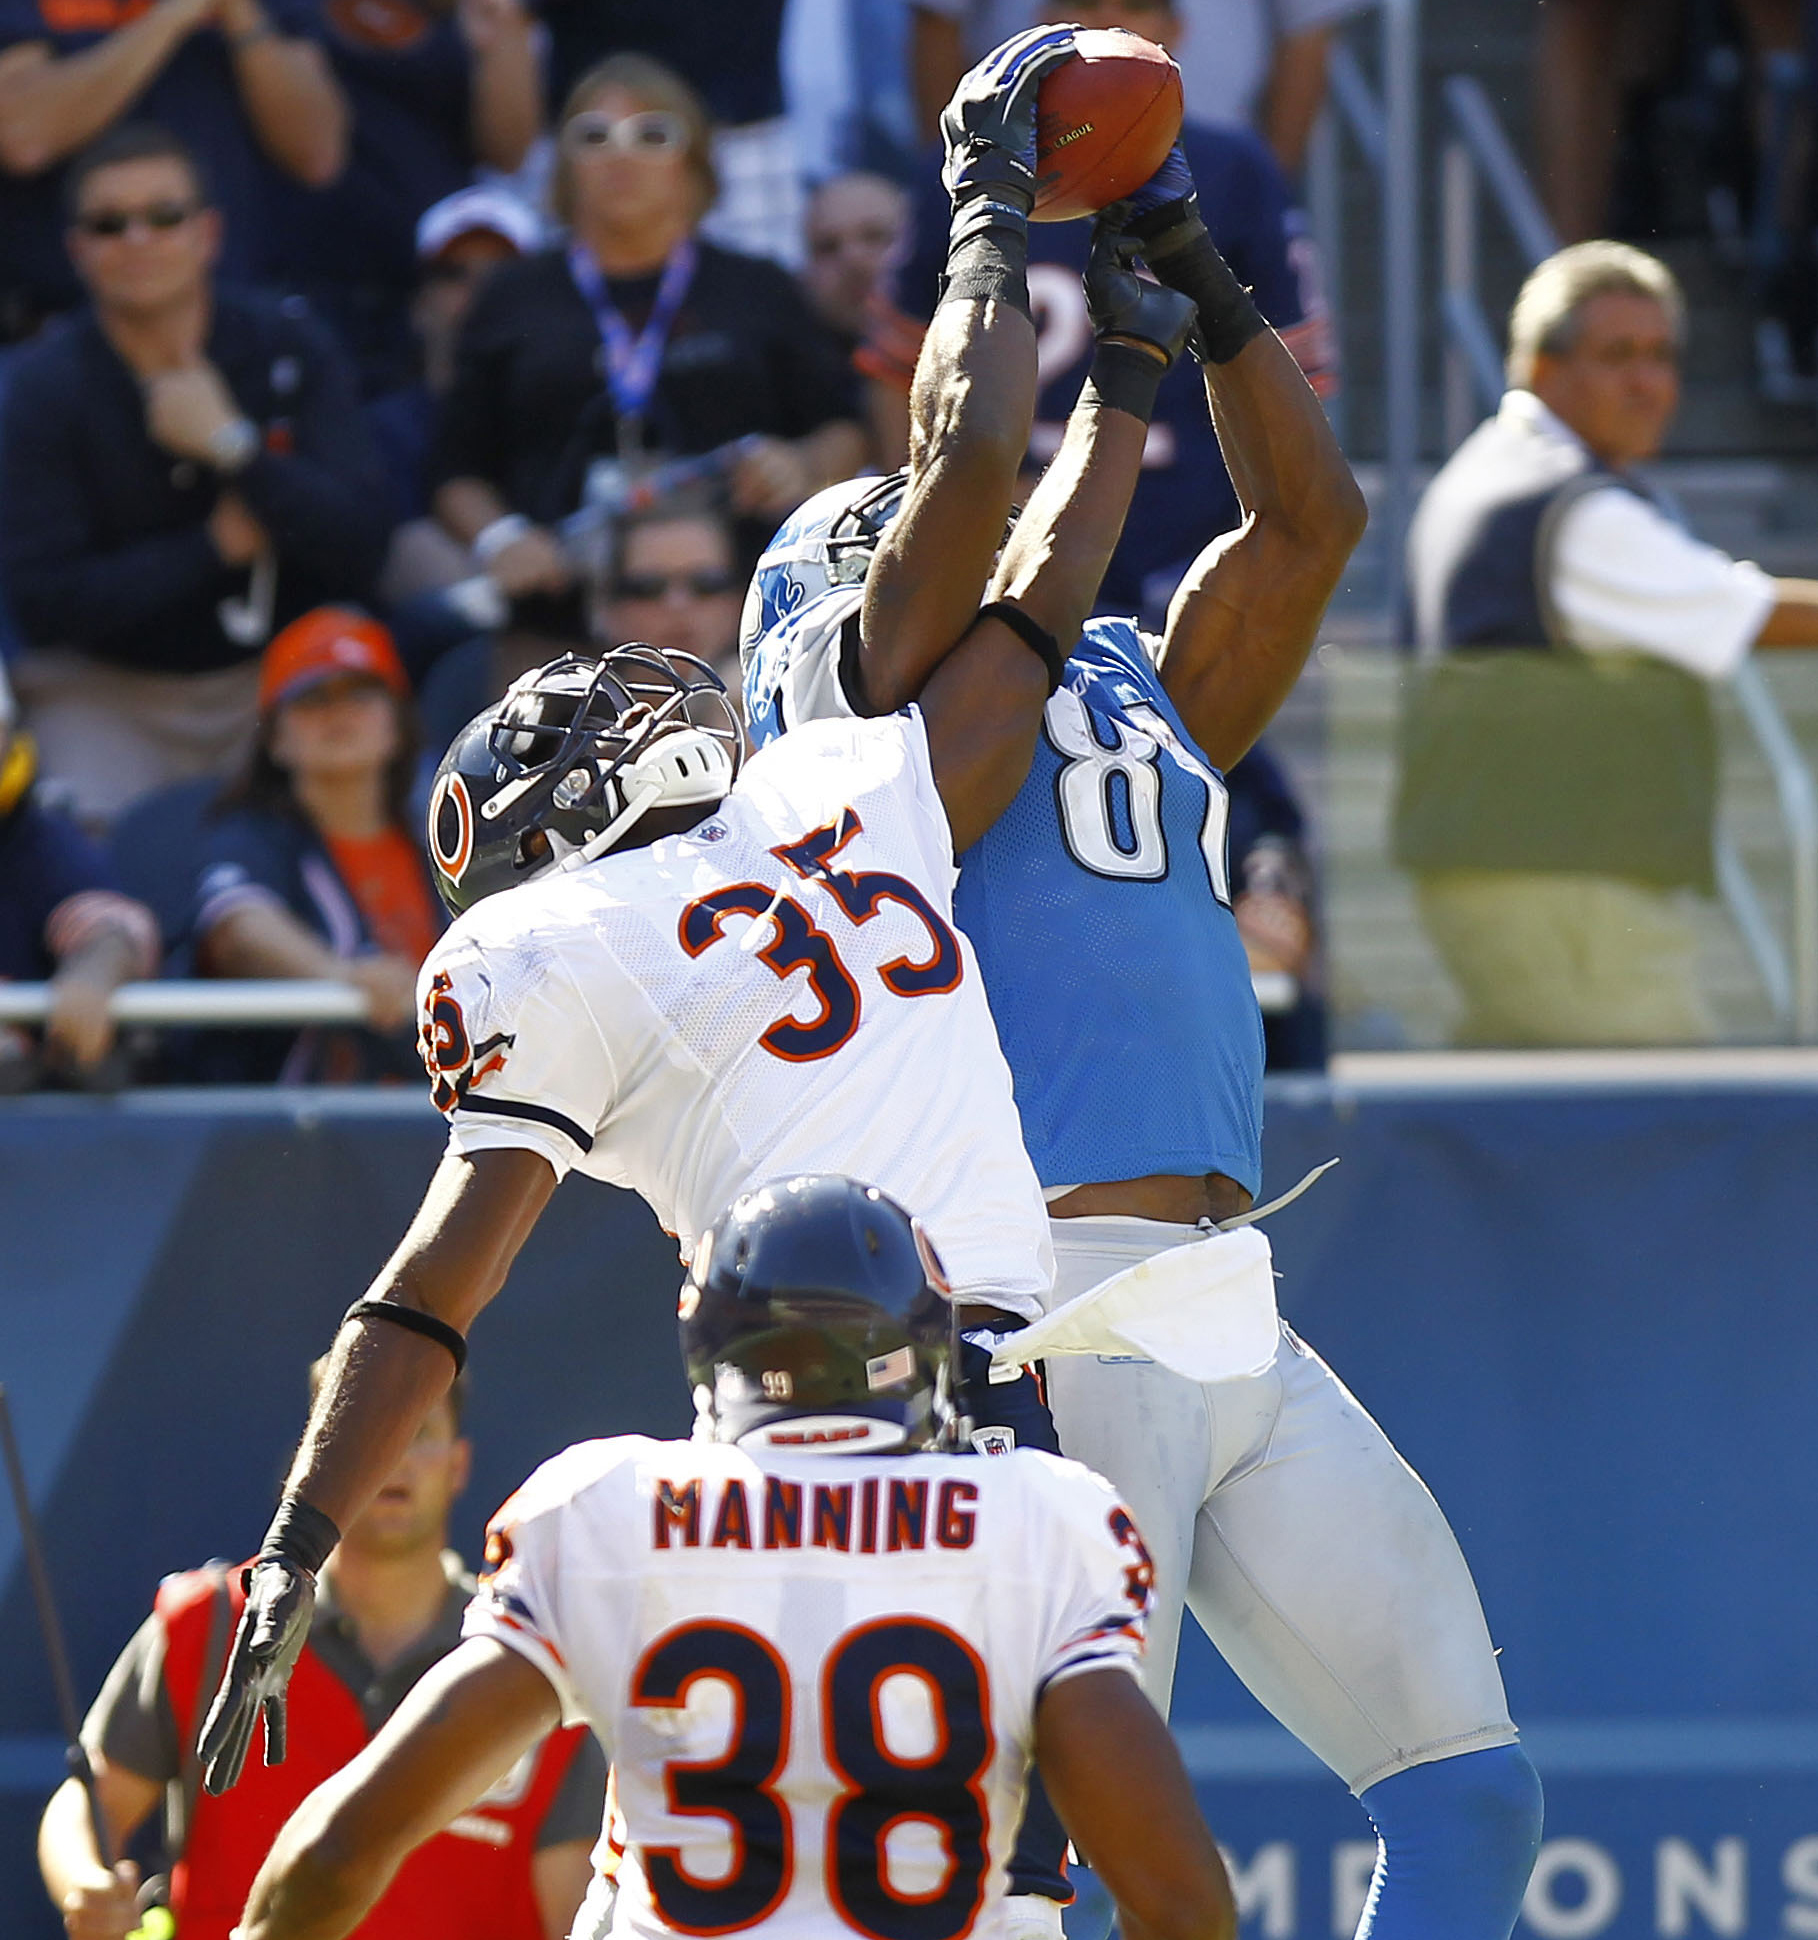 93778e1bb Detroit Lions wide receiver Calvin Johnson (81) is unable to maintain  possession of a ball in the end zone while defended by Chicago Bears  cornerback Zack ...